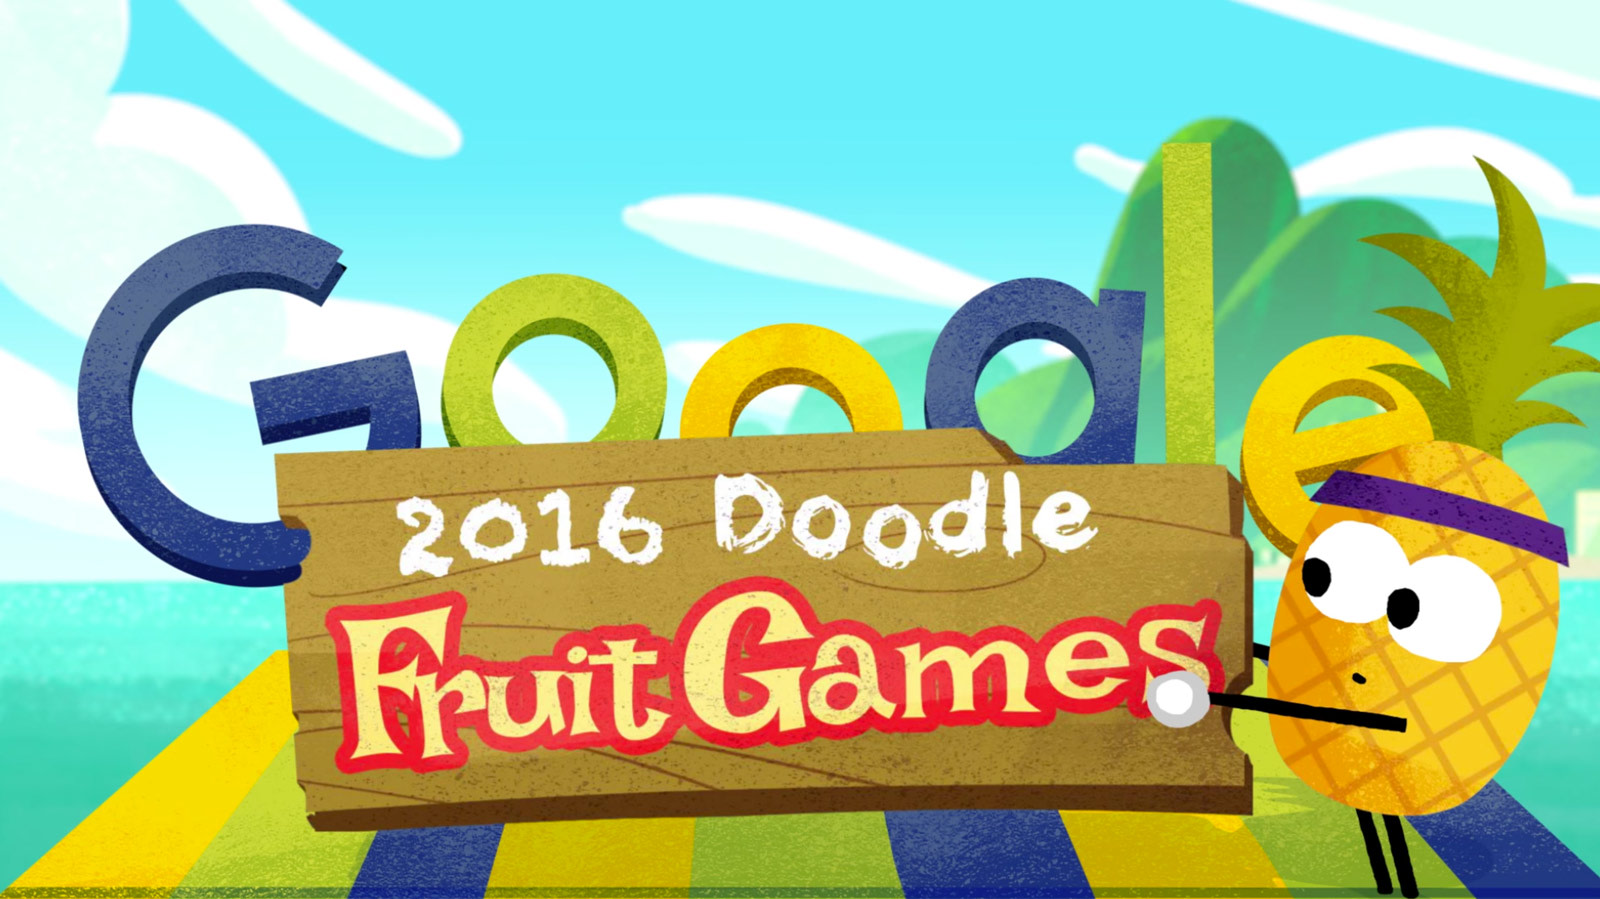 Google sneaks Olympic-themed minigames into its mobile app (via @engadget)